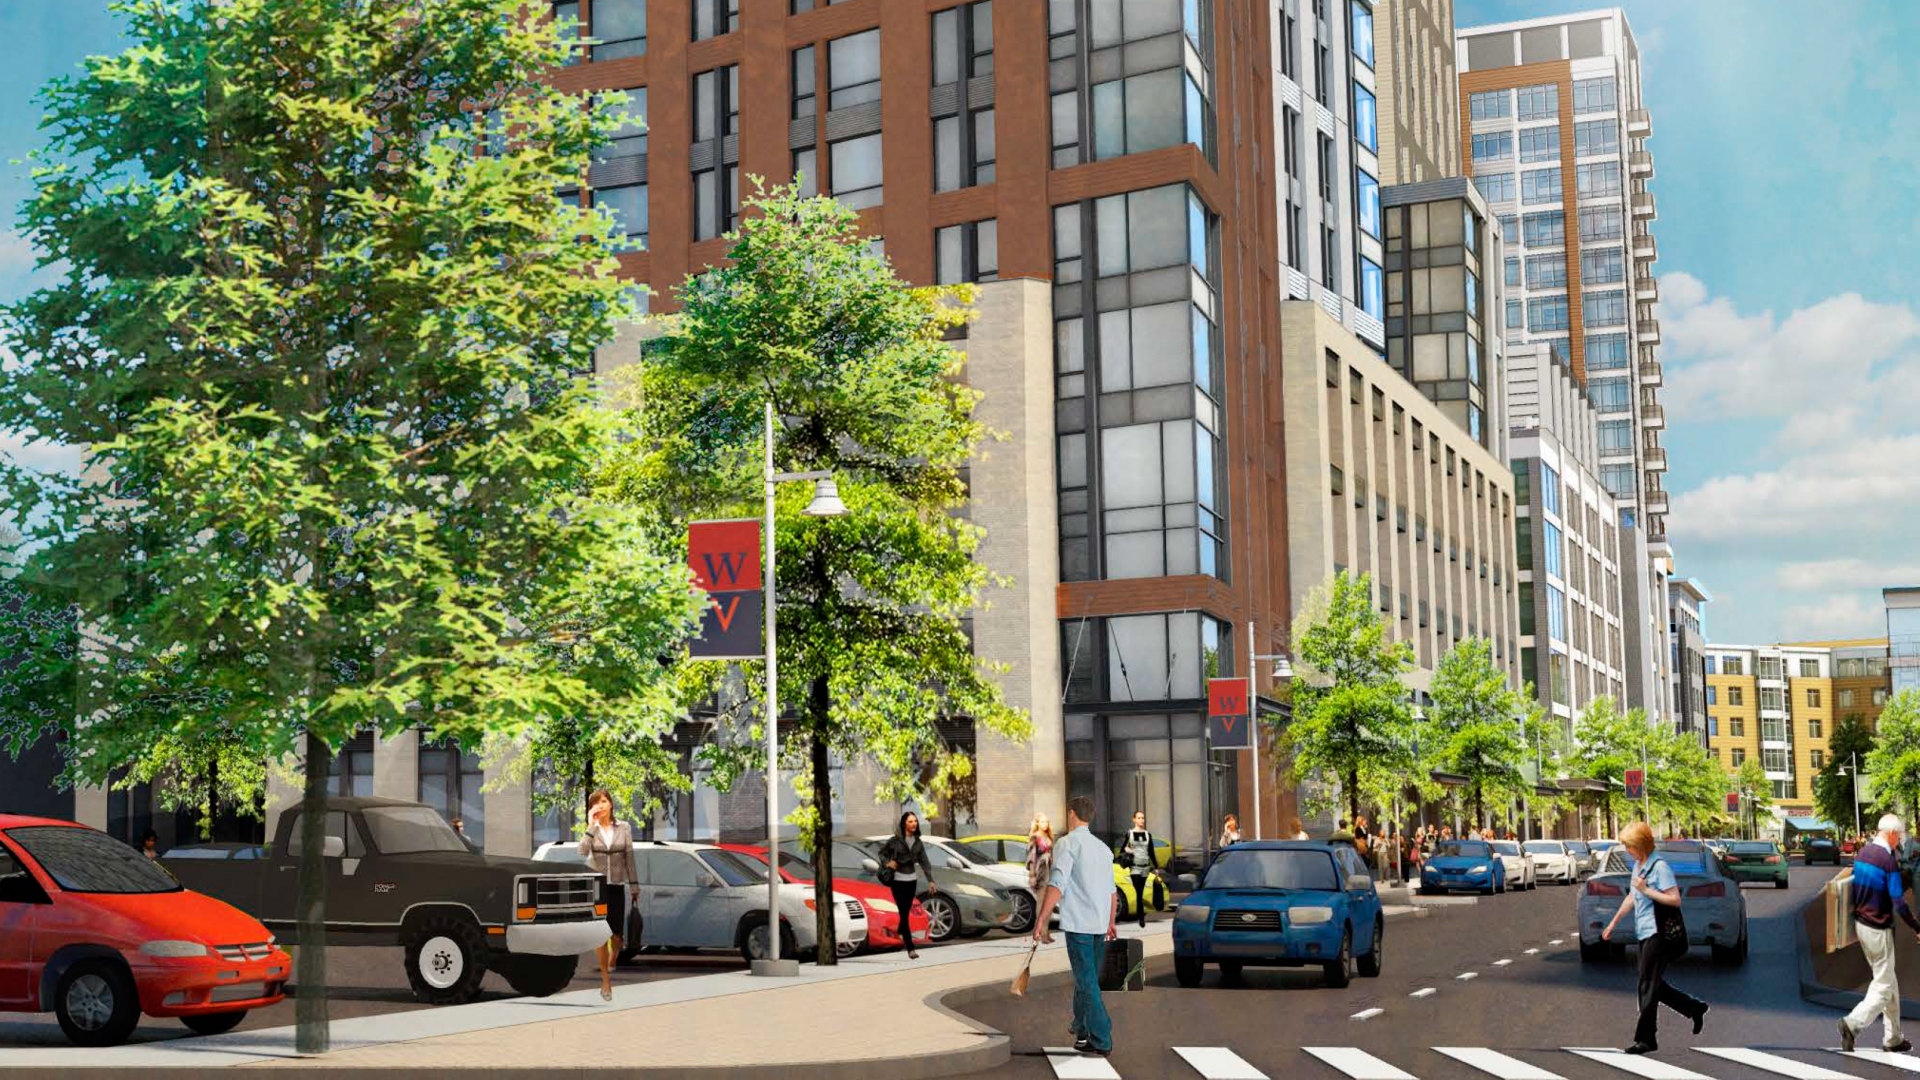 BOSTON BUSINESS JOURNAL: First Look – Massive Mixed-Use Residential Village Proposed In South Boston